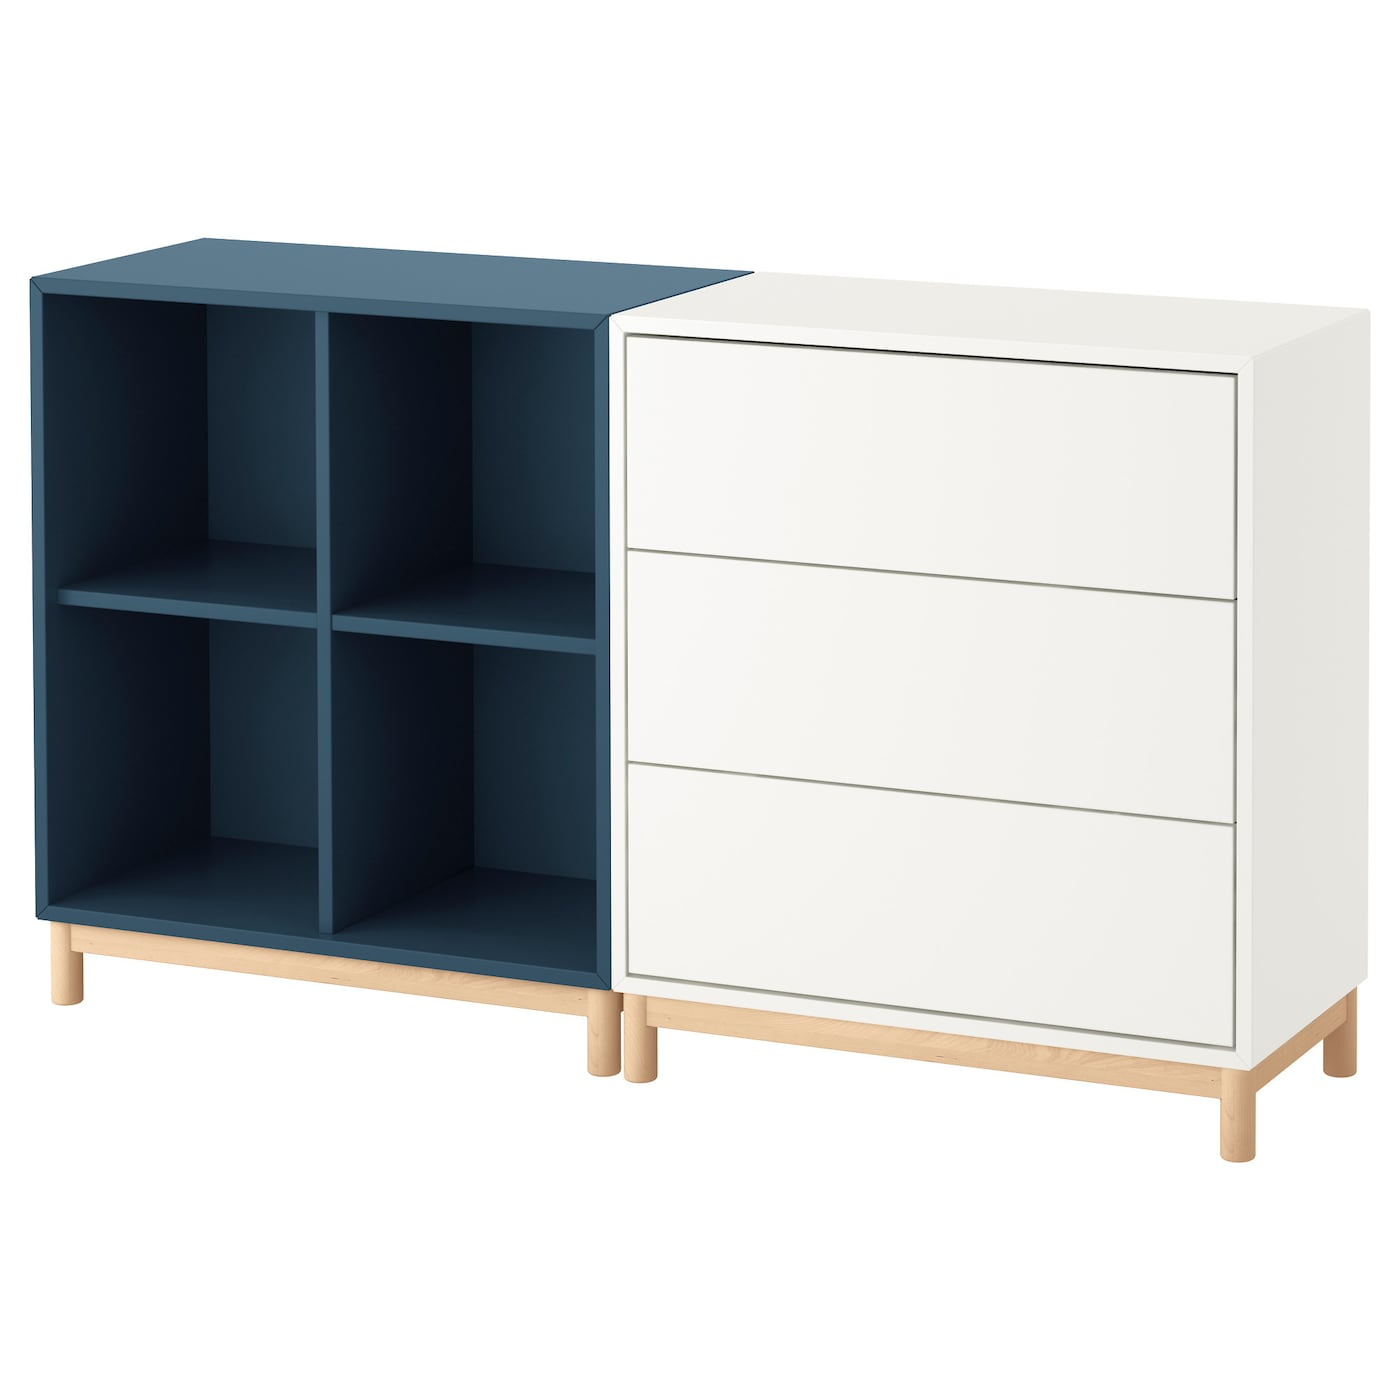 eket cabinet combination with legs white dark blue 140 x 35 x 80 cm ikea. Black Bedroom Furniture Sets. Home Design Ideas